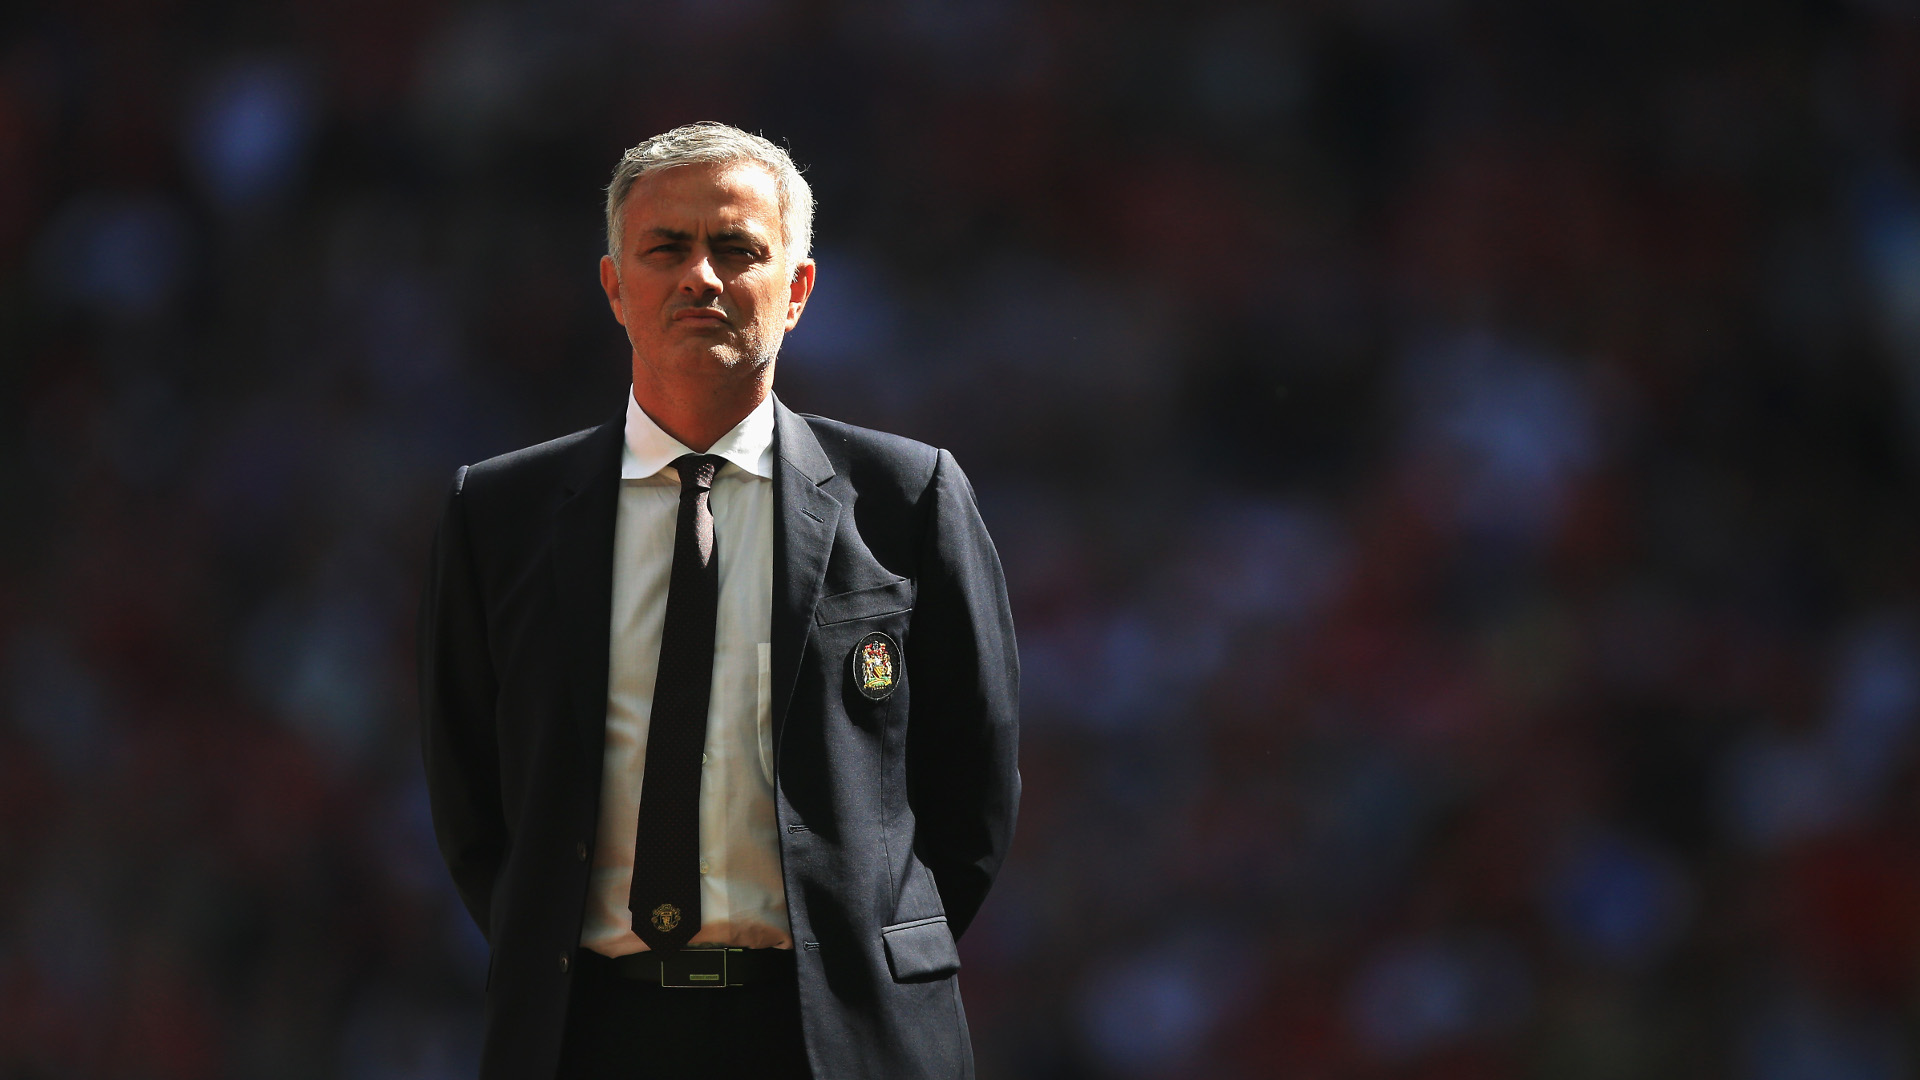 Jos%C3%A9-Mourinho-watches-on-during-the-Charity-Shield-season-opener-vs-Leicester-City-1920x1080-De-wallpaper-wpc5806500